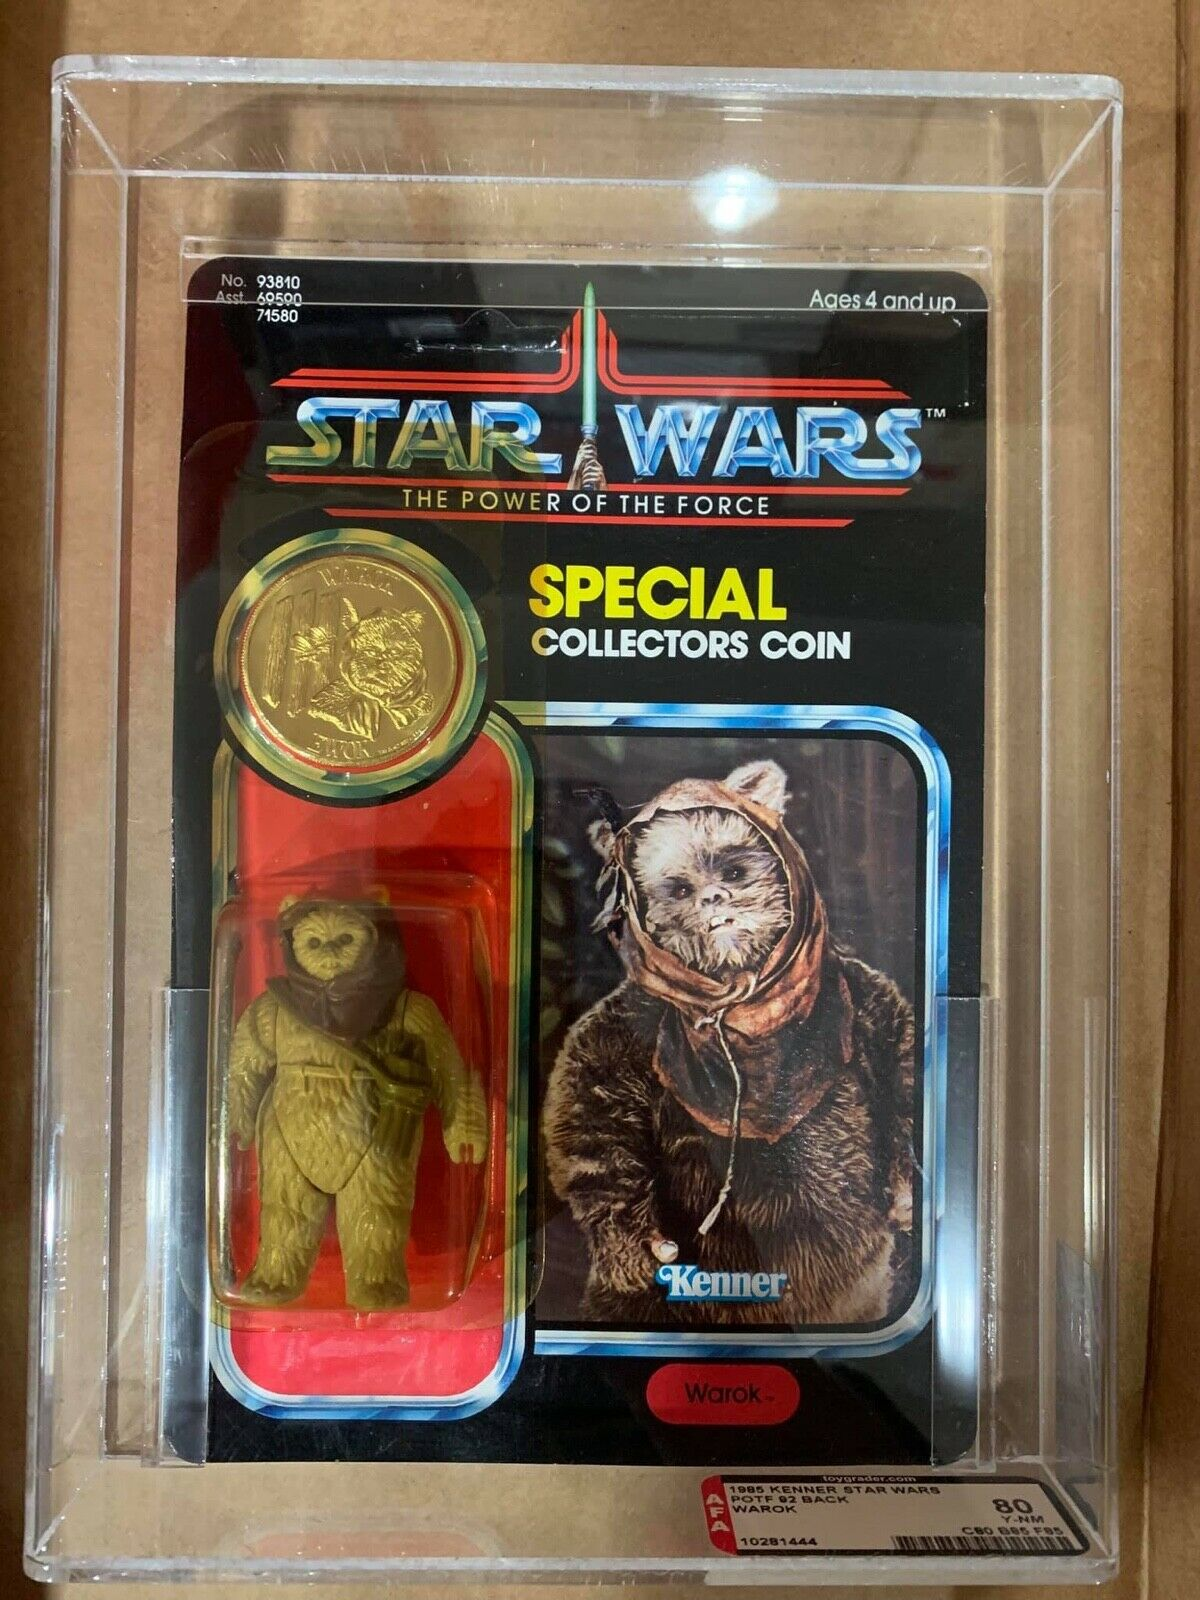 AFA 80 1985 Kenner botf warok 92 Background y - NM (80 - 85 - 85)